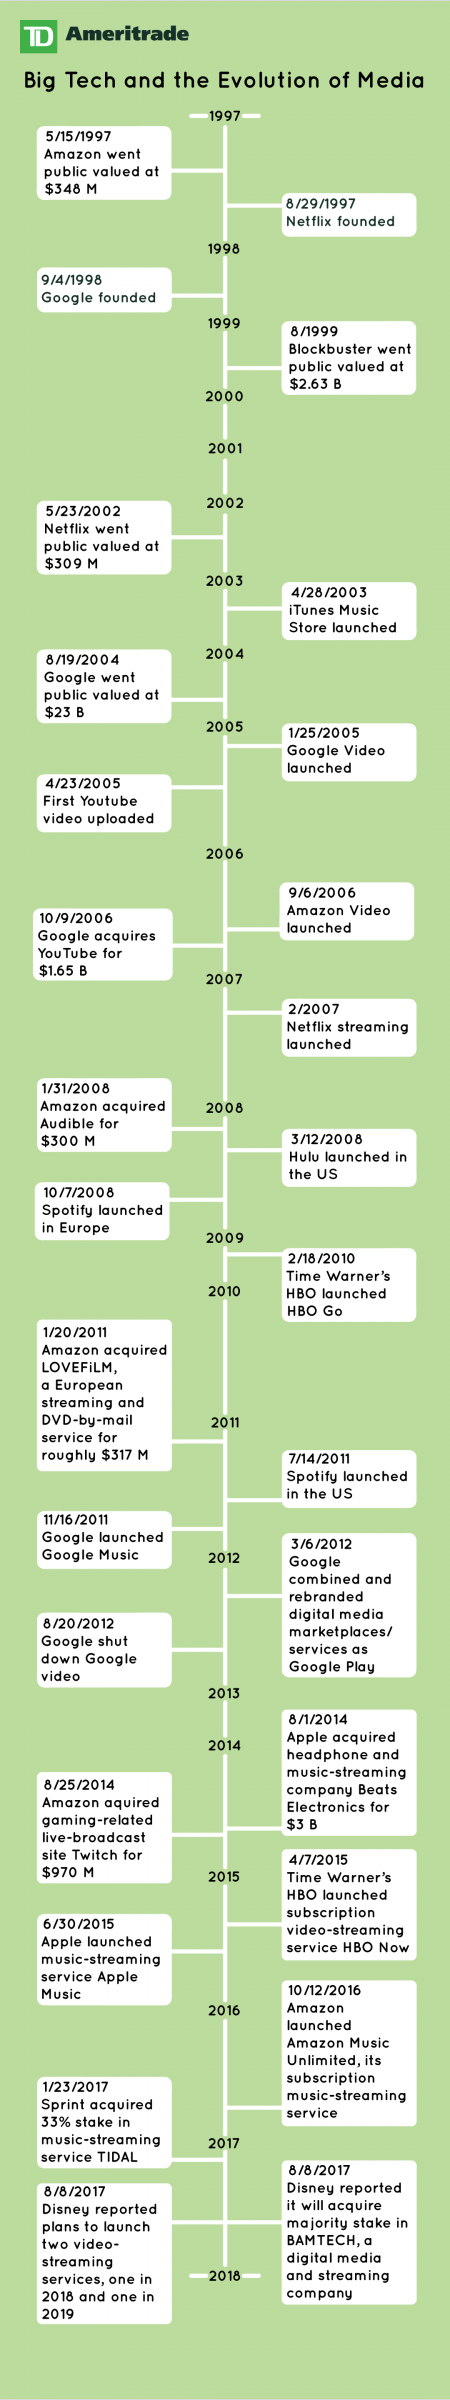 media_industry_timeline_for_spotify_article_01.23.183.png